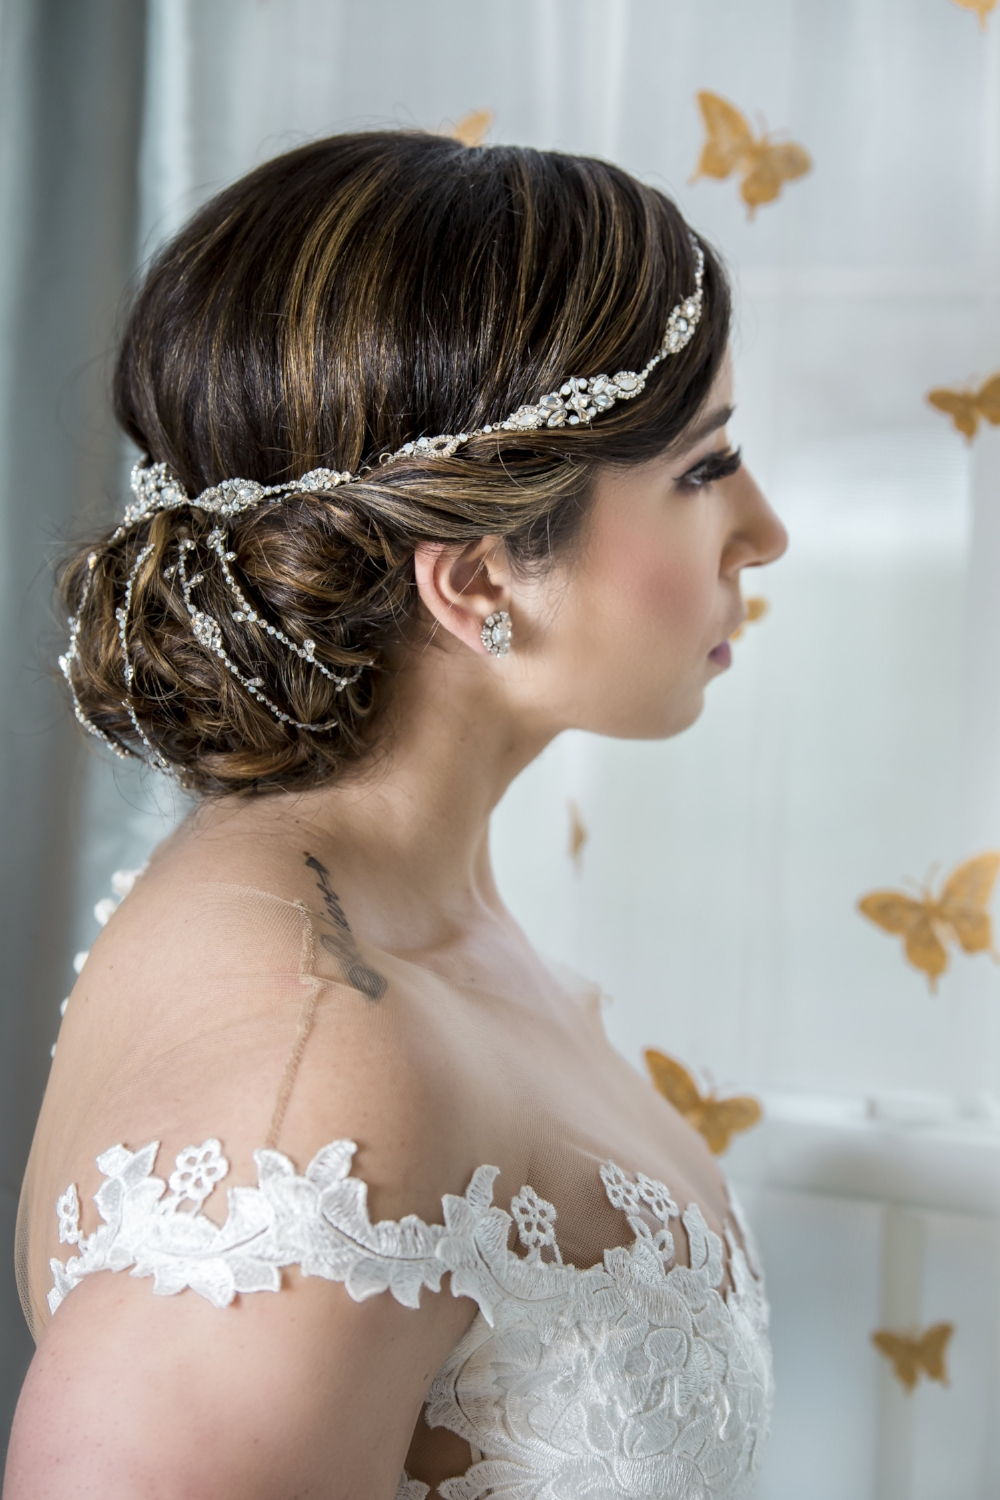 Erin-Usawicz-Photography-Headpiece_2.jpg